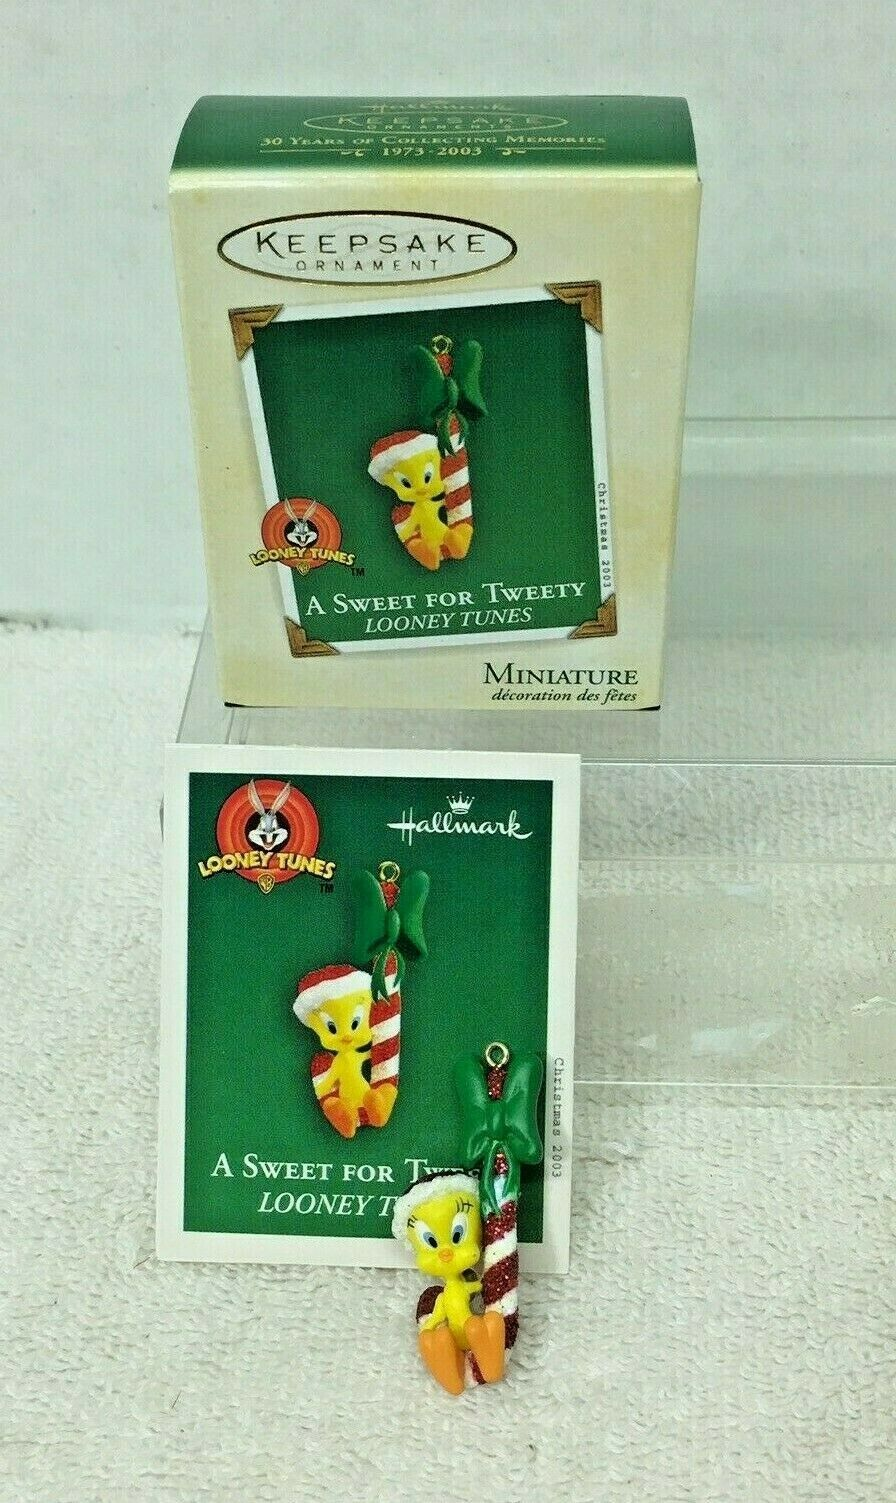 Primary image for 2003 Sweet for Tweety Looney Tune Miniature Hallmark Christmas Tree Ornament MIB